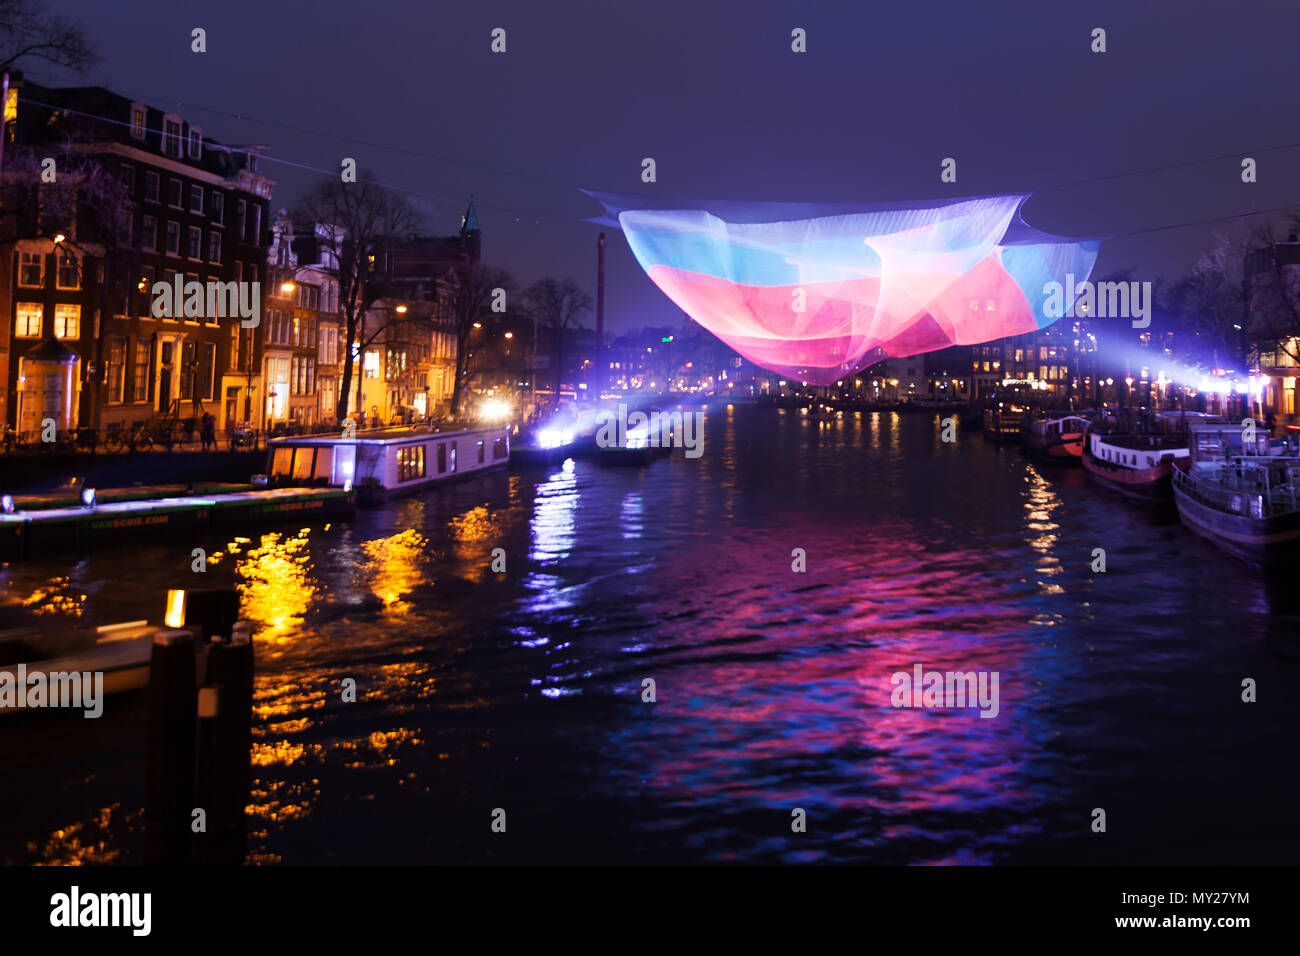 amsterdam light festival a yearly event in the winter in the dutch